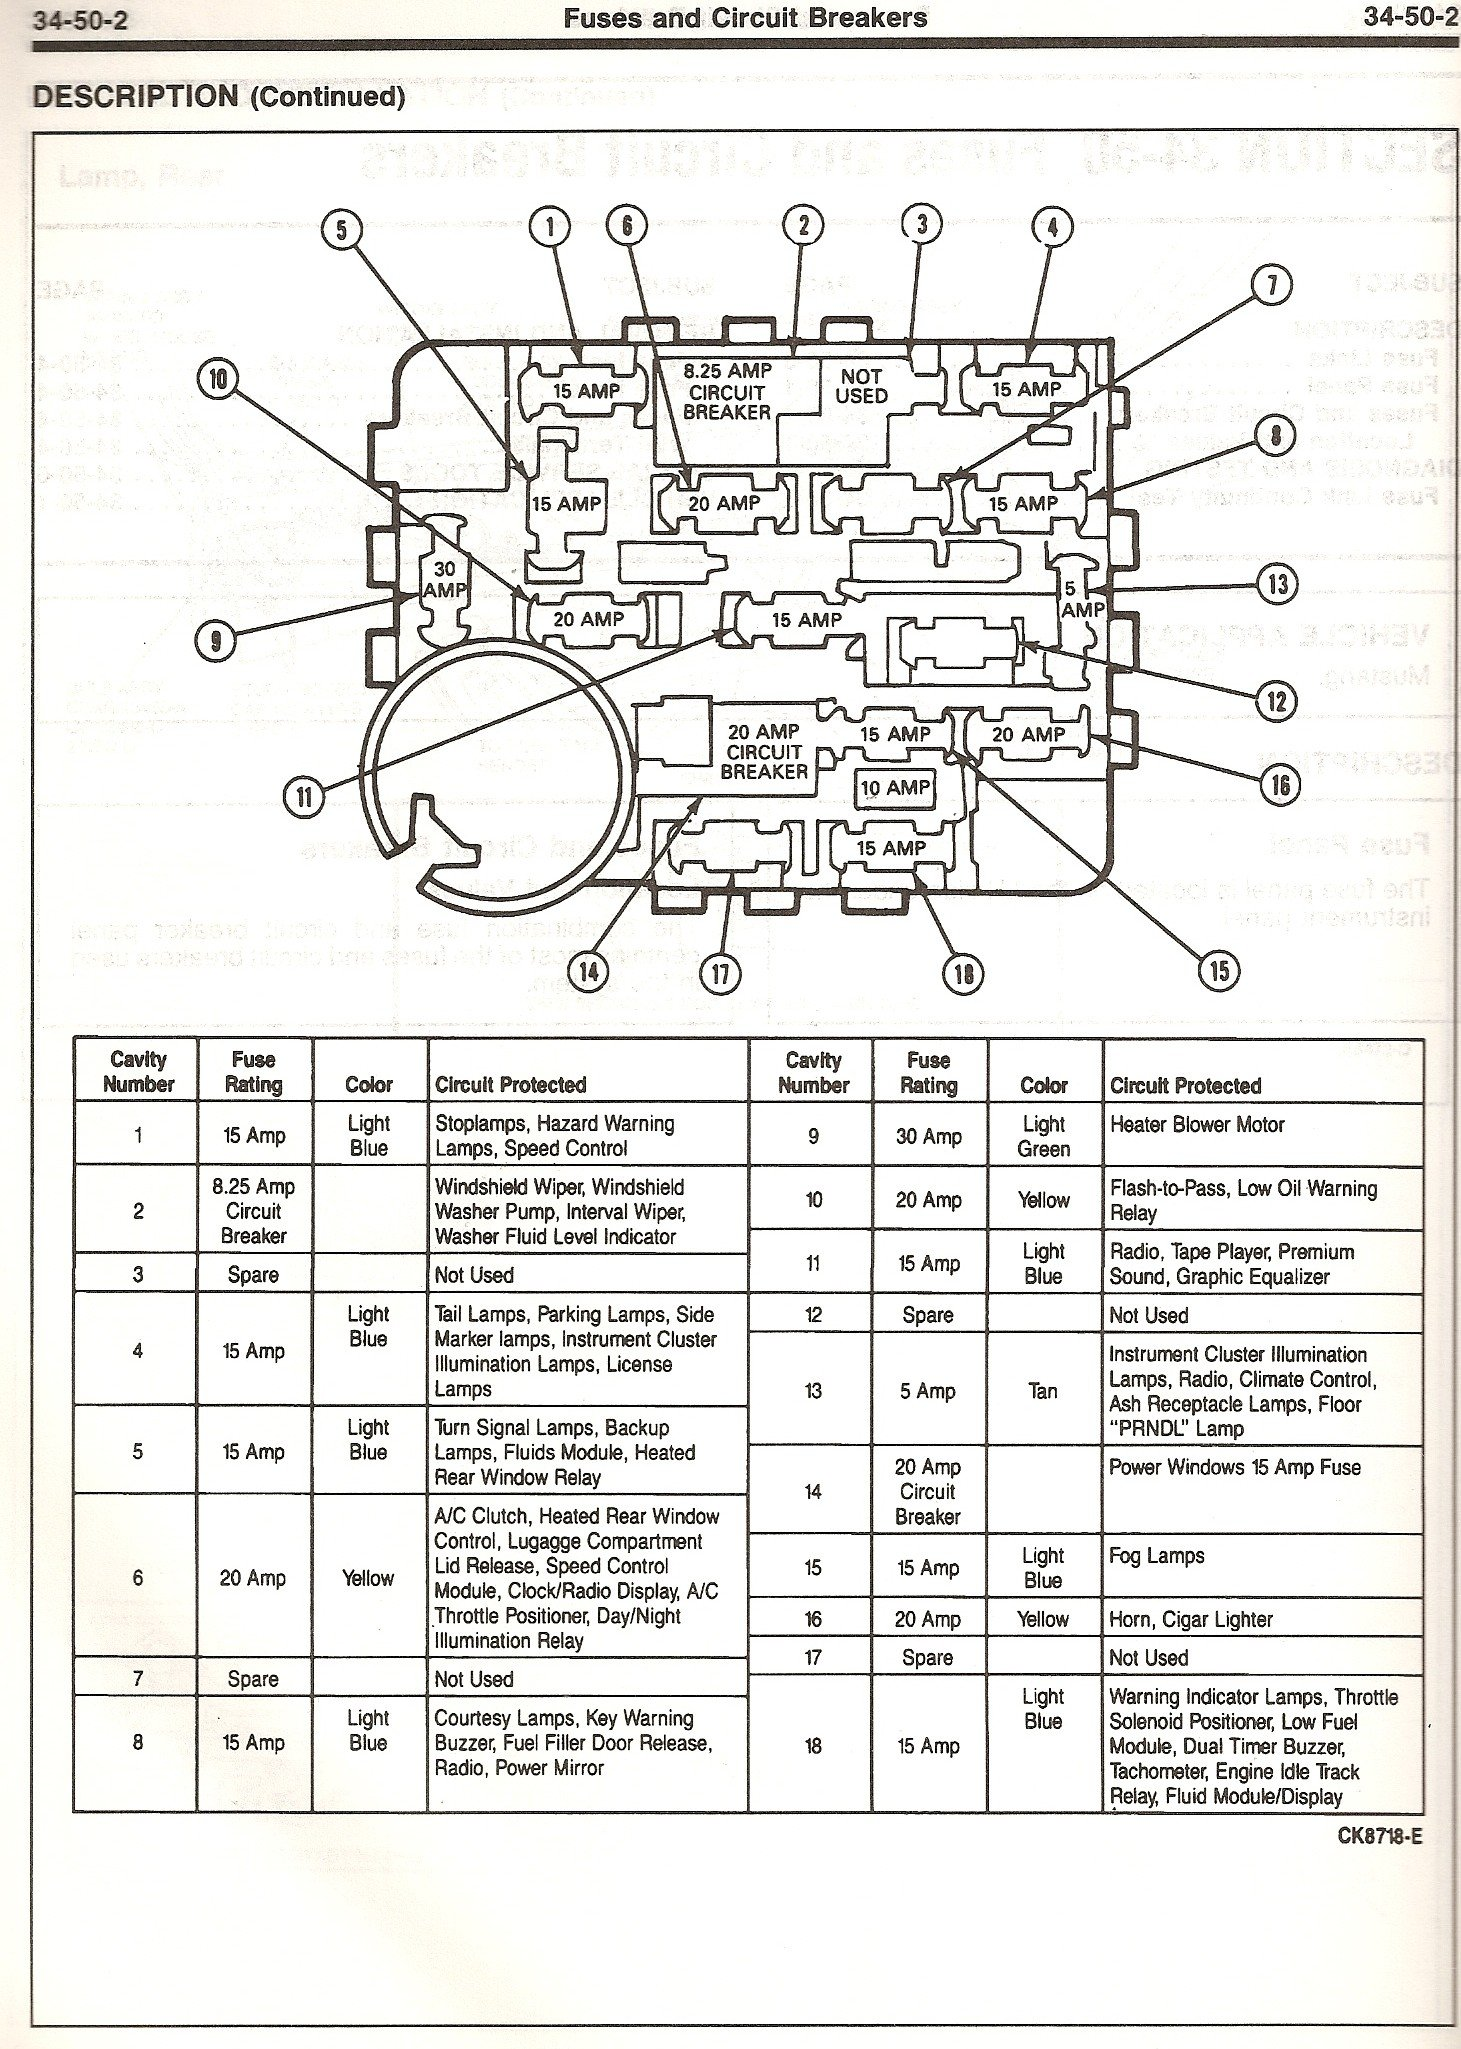 1969 mustang wiring diagrams color coded with 80102 1990 2 3 Mustang Missing Fuse Panel Diagram on Index php additionally 4bocc Ford Escape Hybrid 2007 Ford Escape Hybrid Cd Player Overheated together with Album page besides Olds 2002 Alero 2 2l Abs Wiring Diagram as well 936674 Maf Conversion Questions.